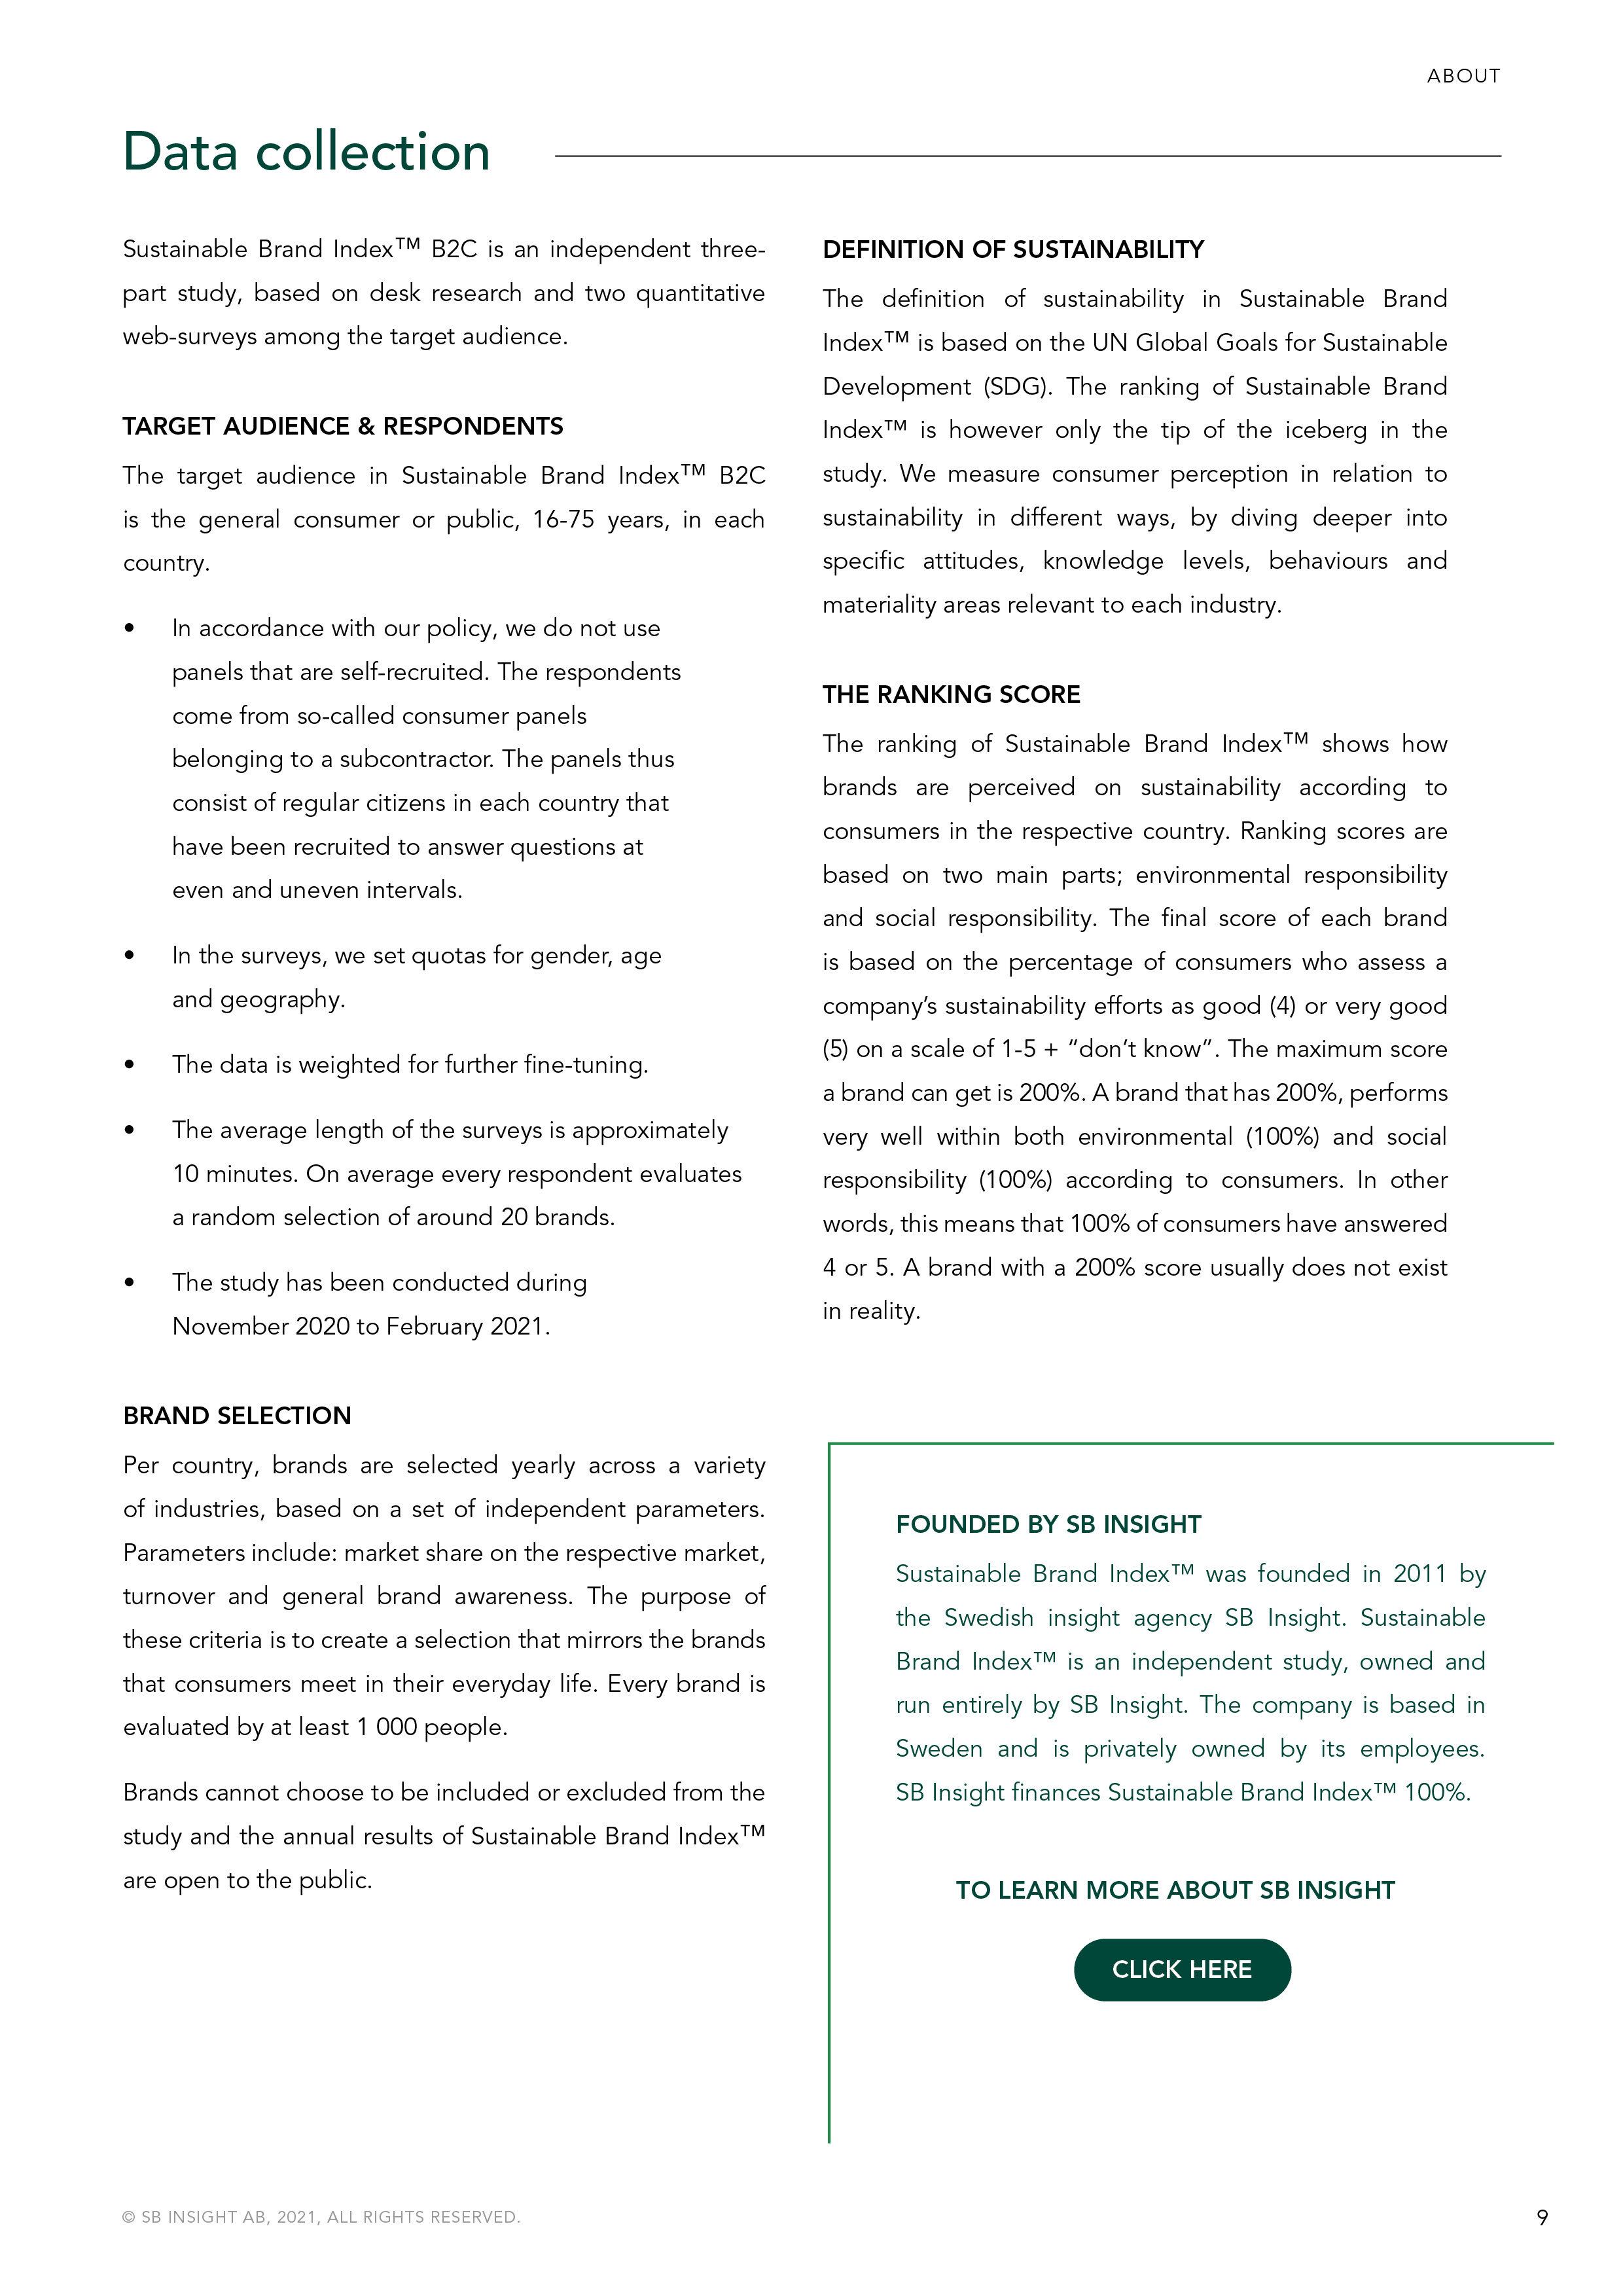 FI_Official Report_2021_Sustainable Brand Index9.jpg